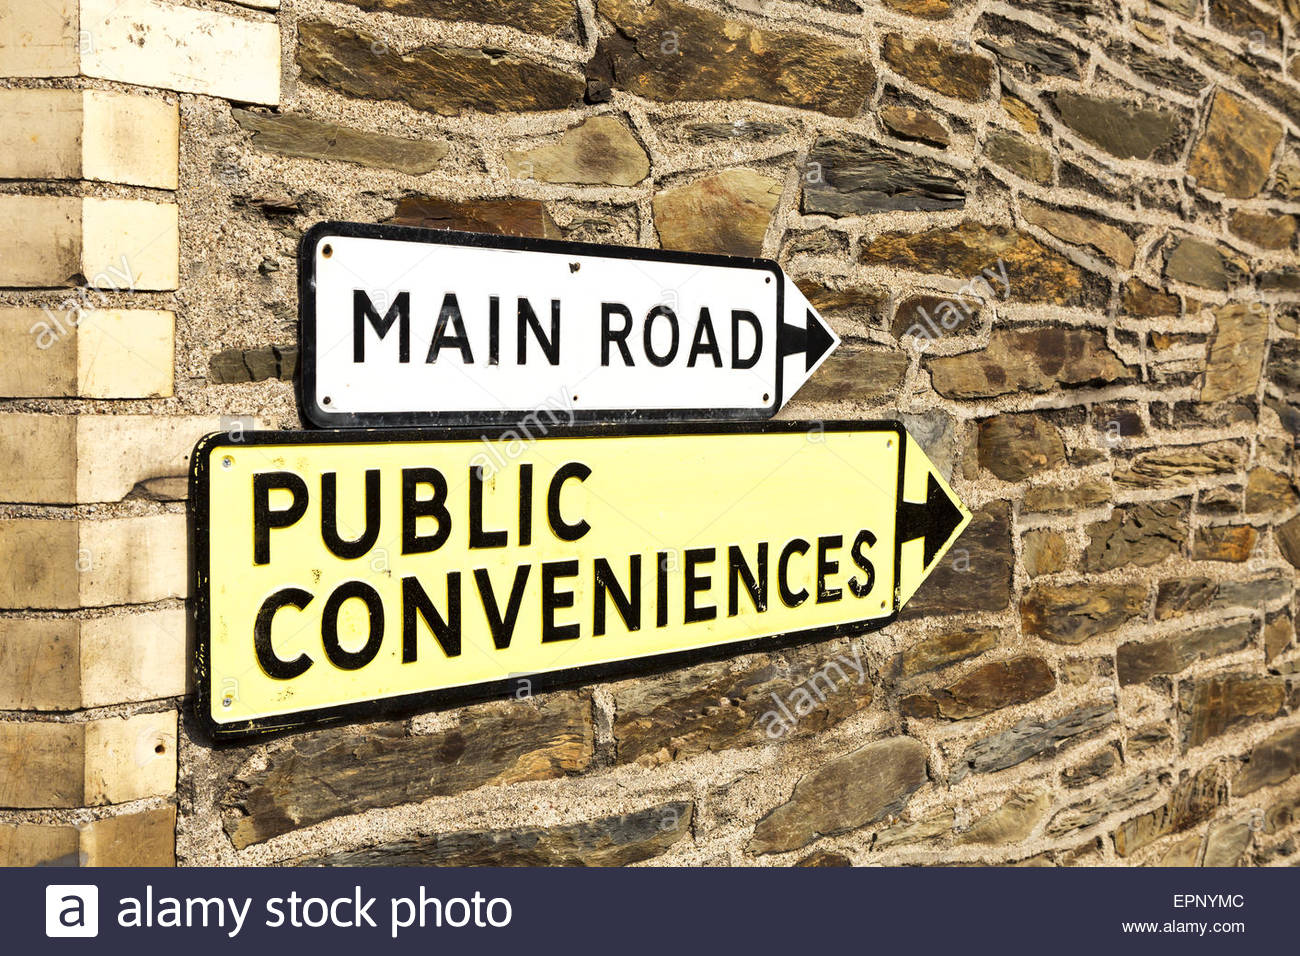 Main Road and Public Conveniences signs with pointing arrows on a stone wall. - Stock Image